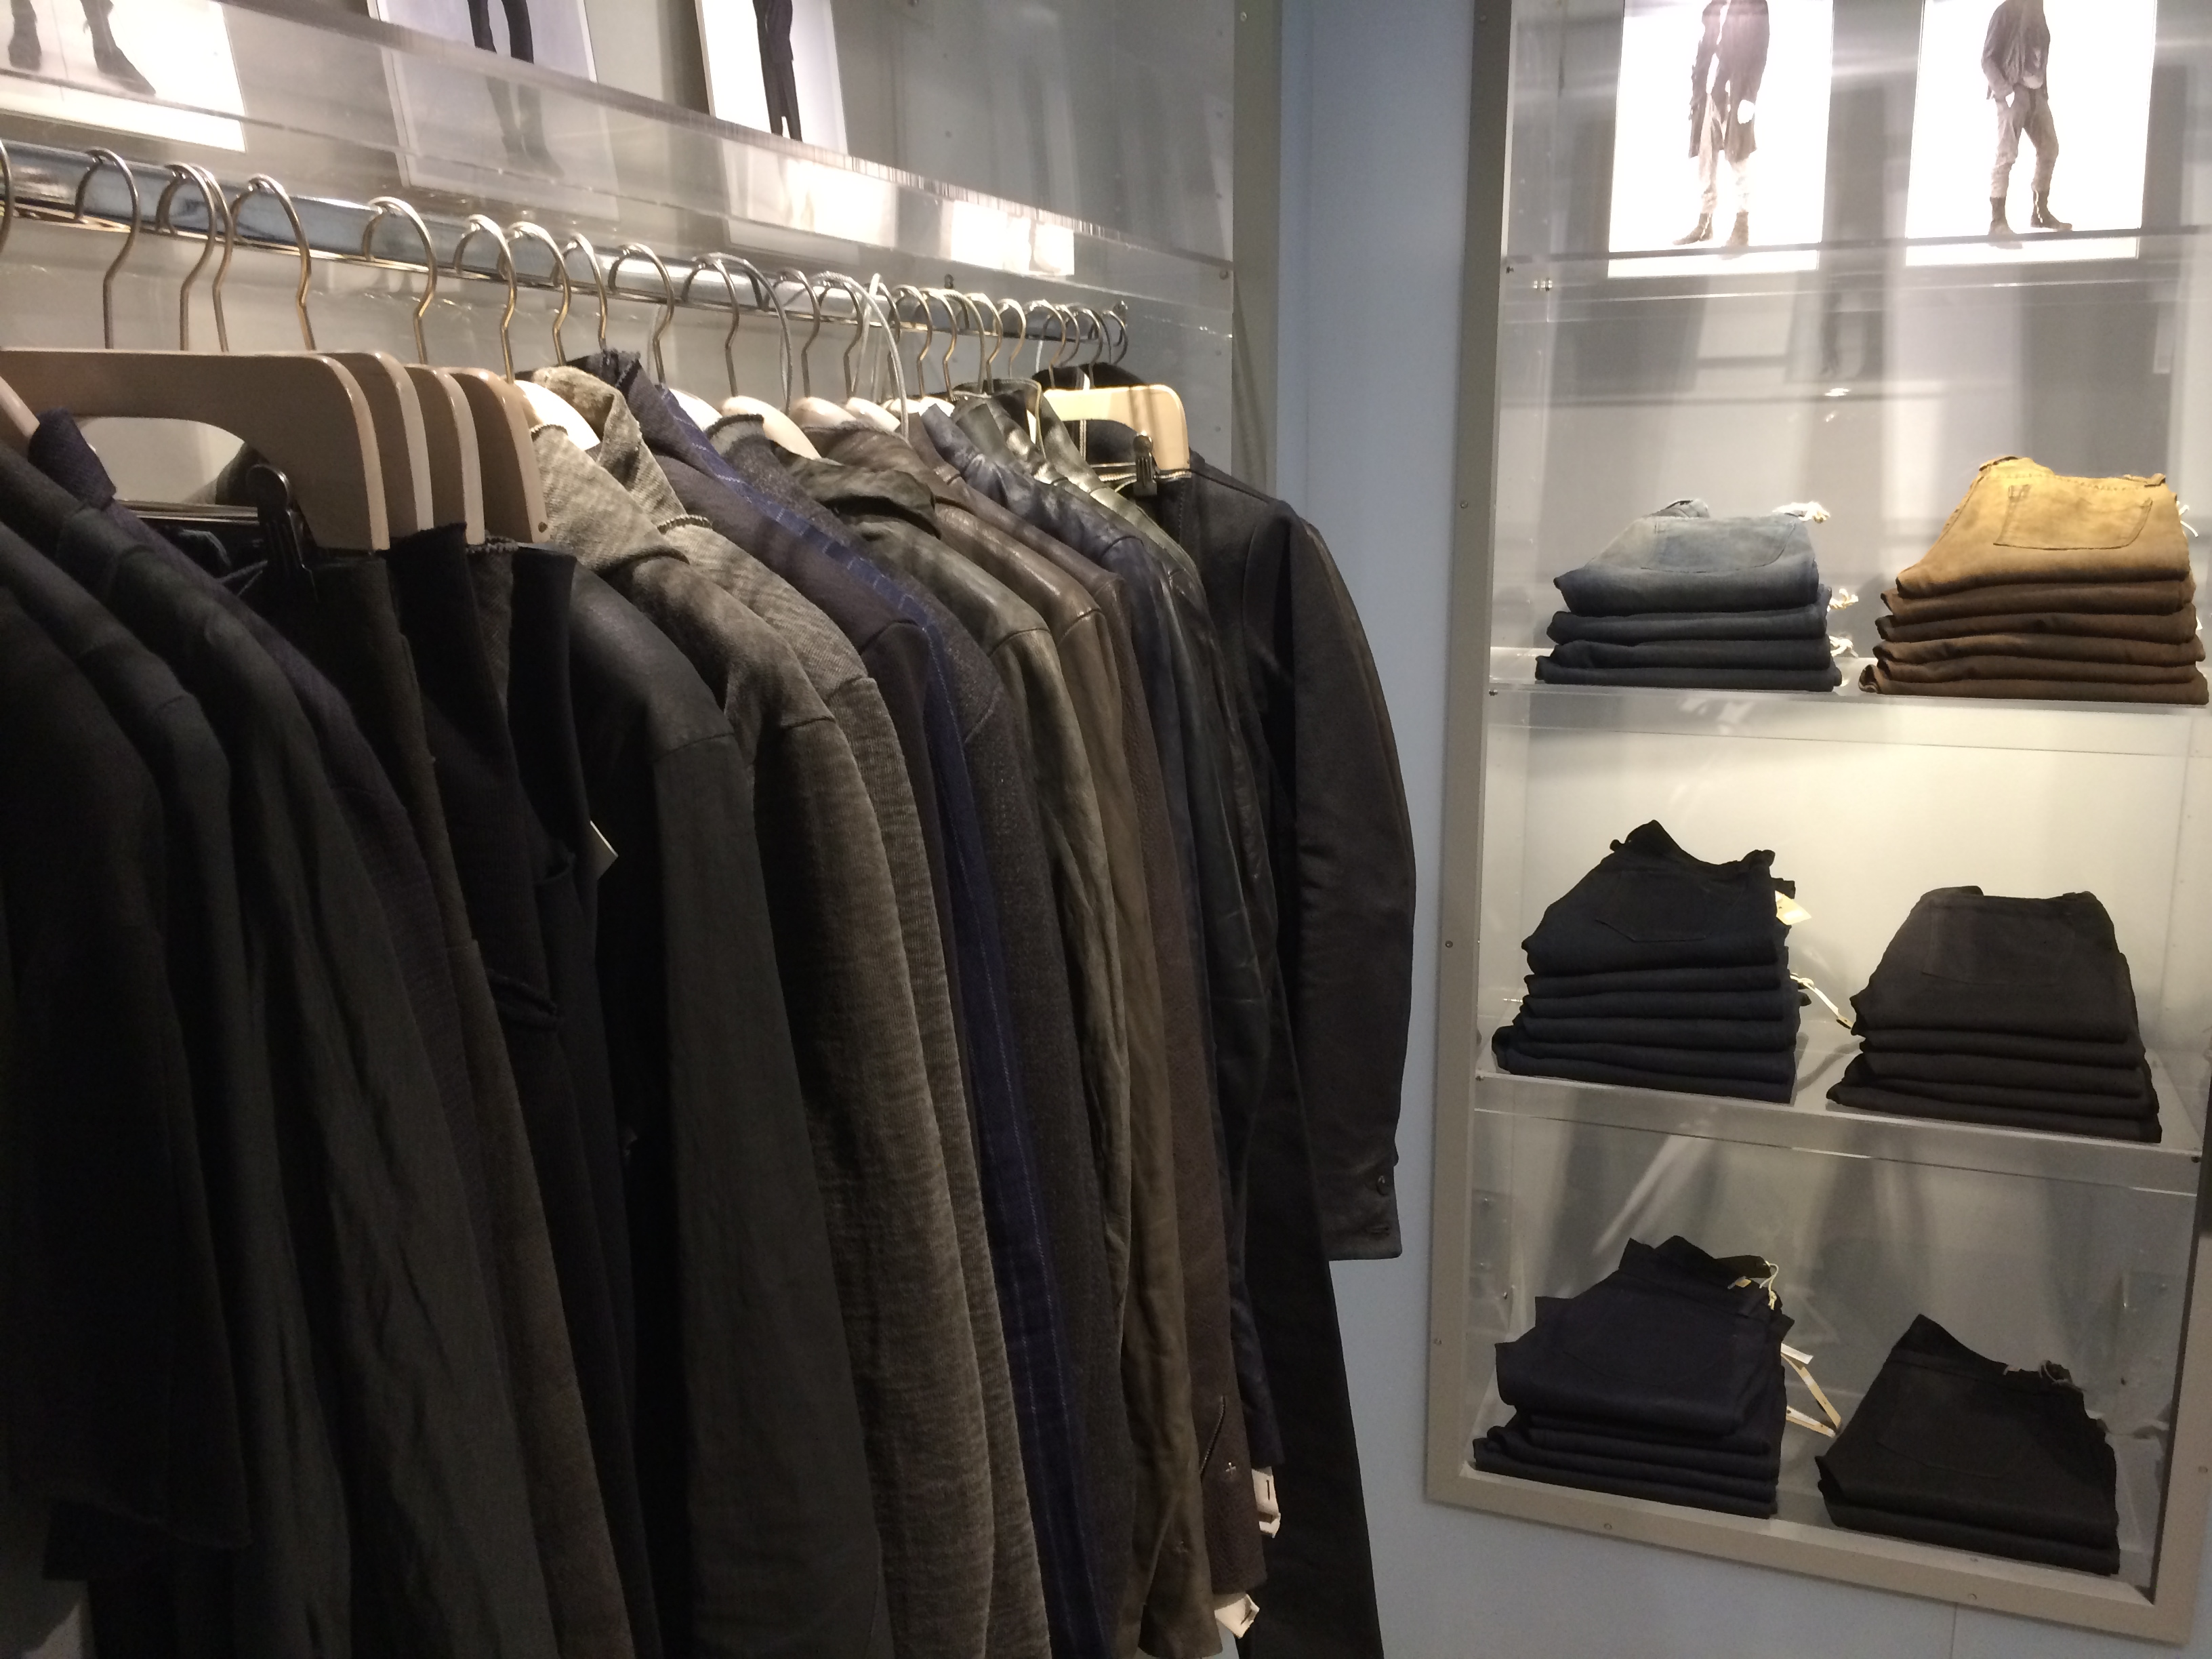 Select outerwear and denim